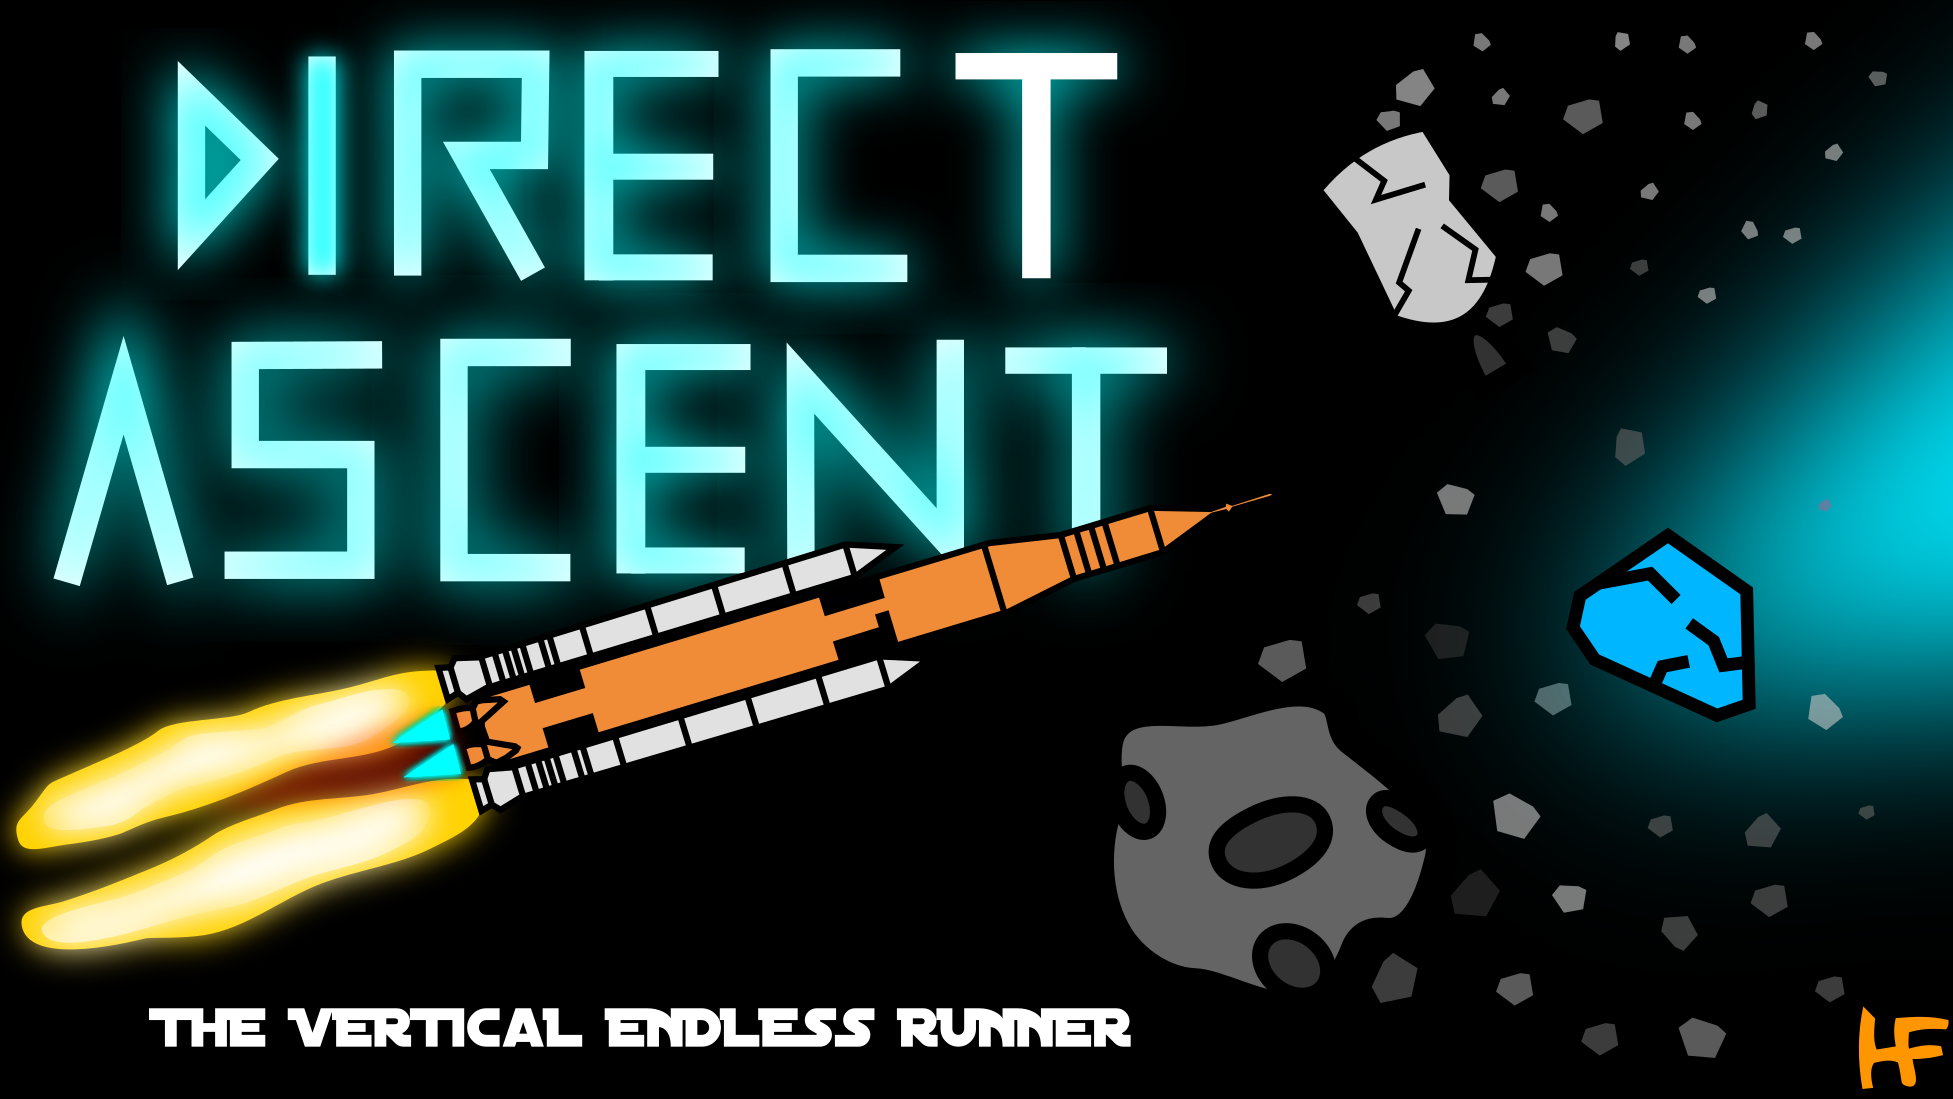 Direct Ascent - The Vertical Endless Runner